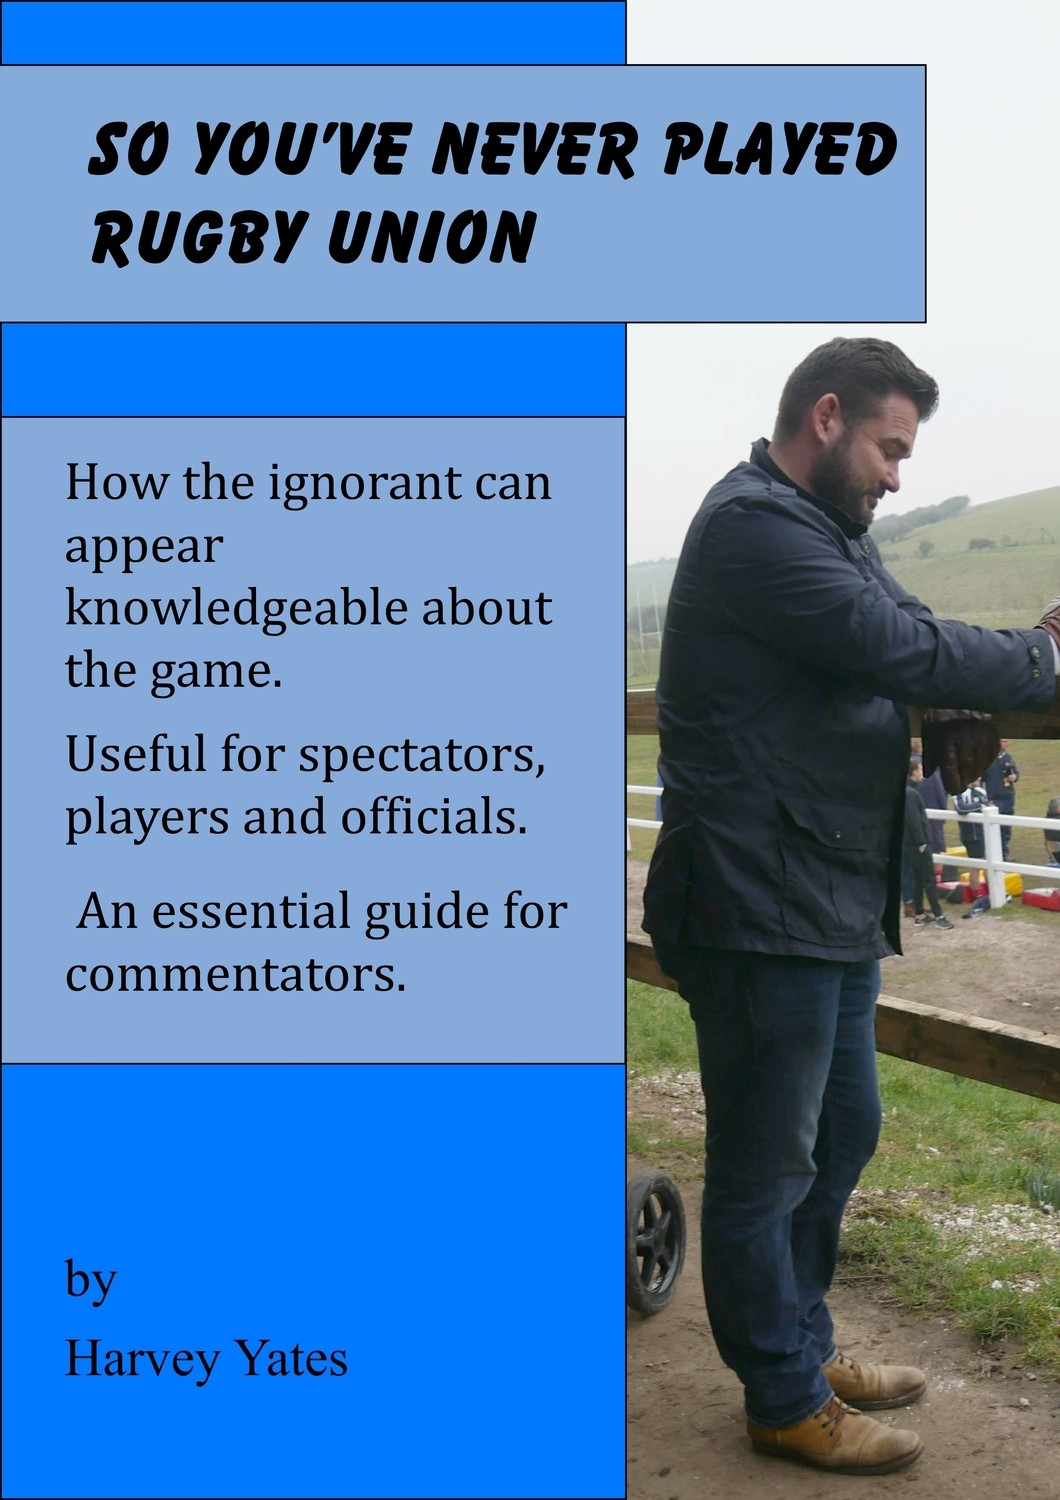 So you've never played rugby union